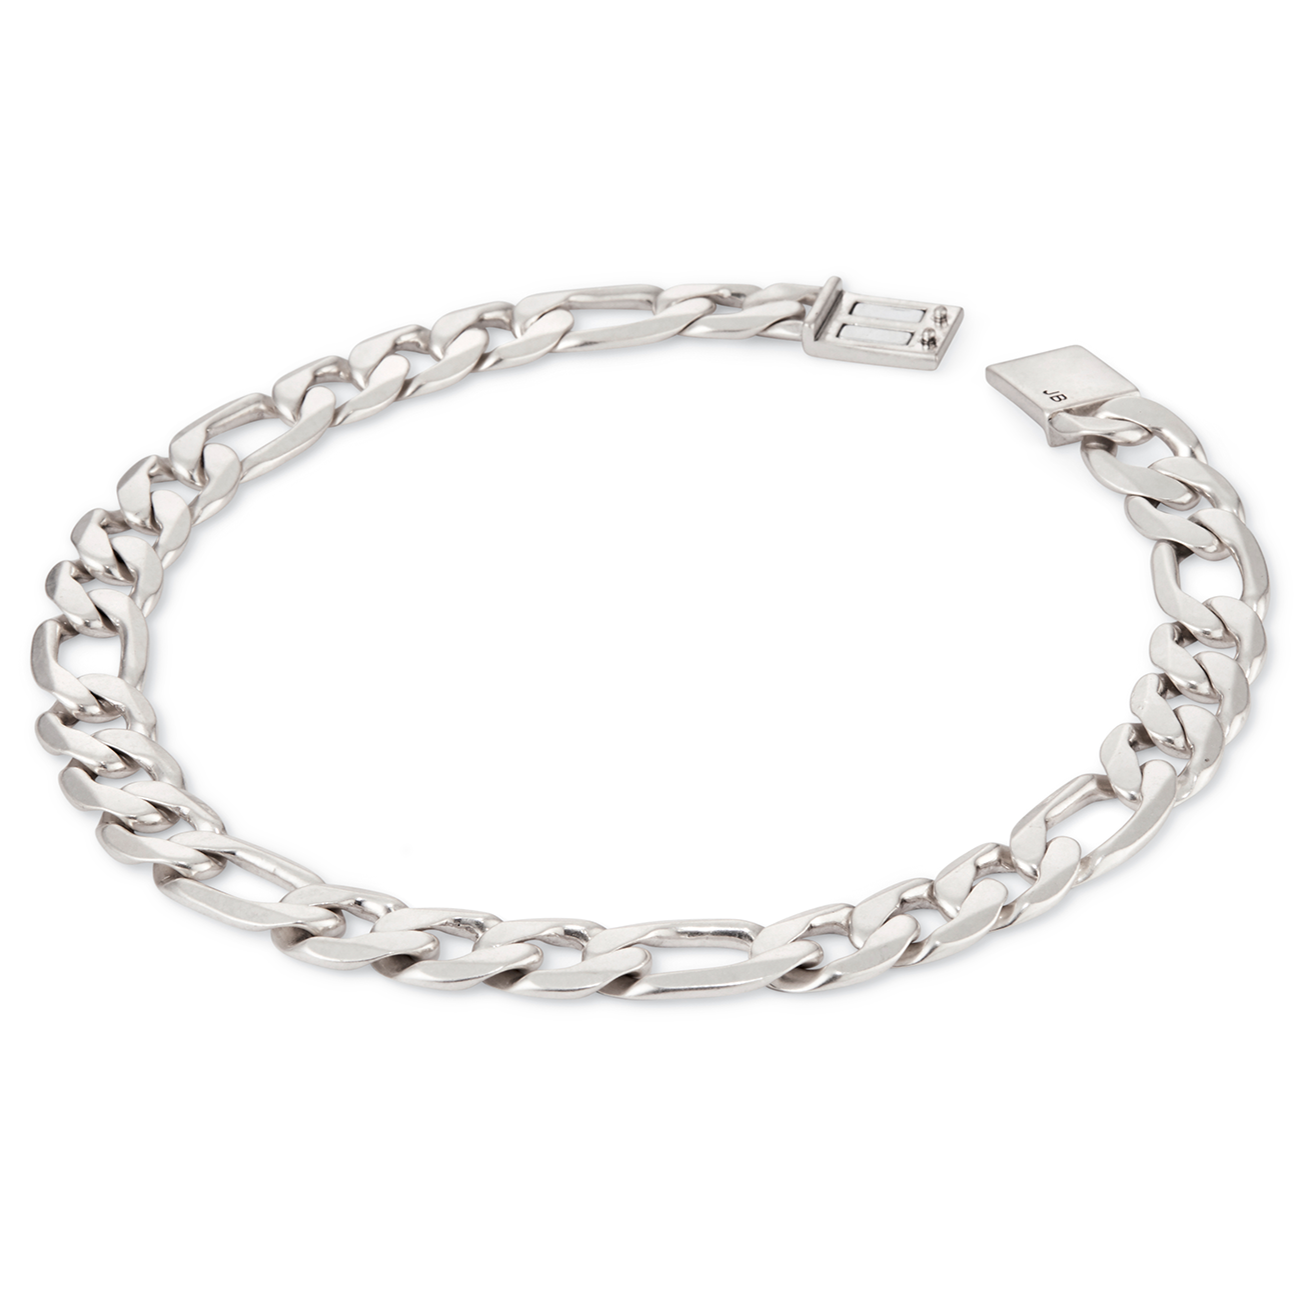 Silver link Carter Choker chain necklace by JENNY BIRD